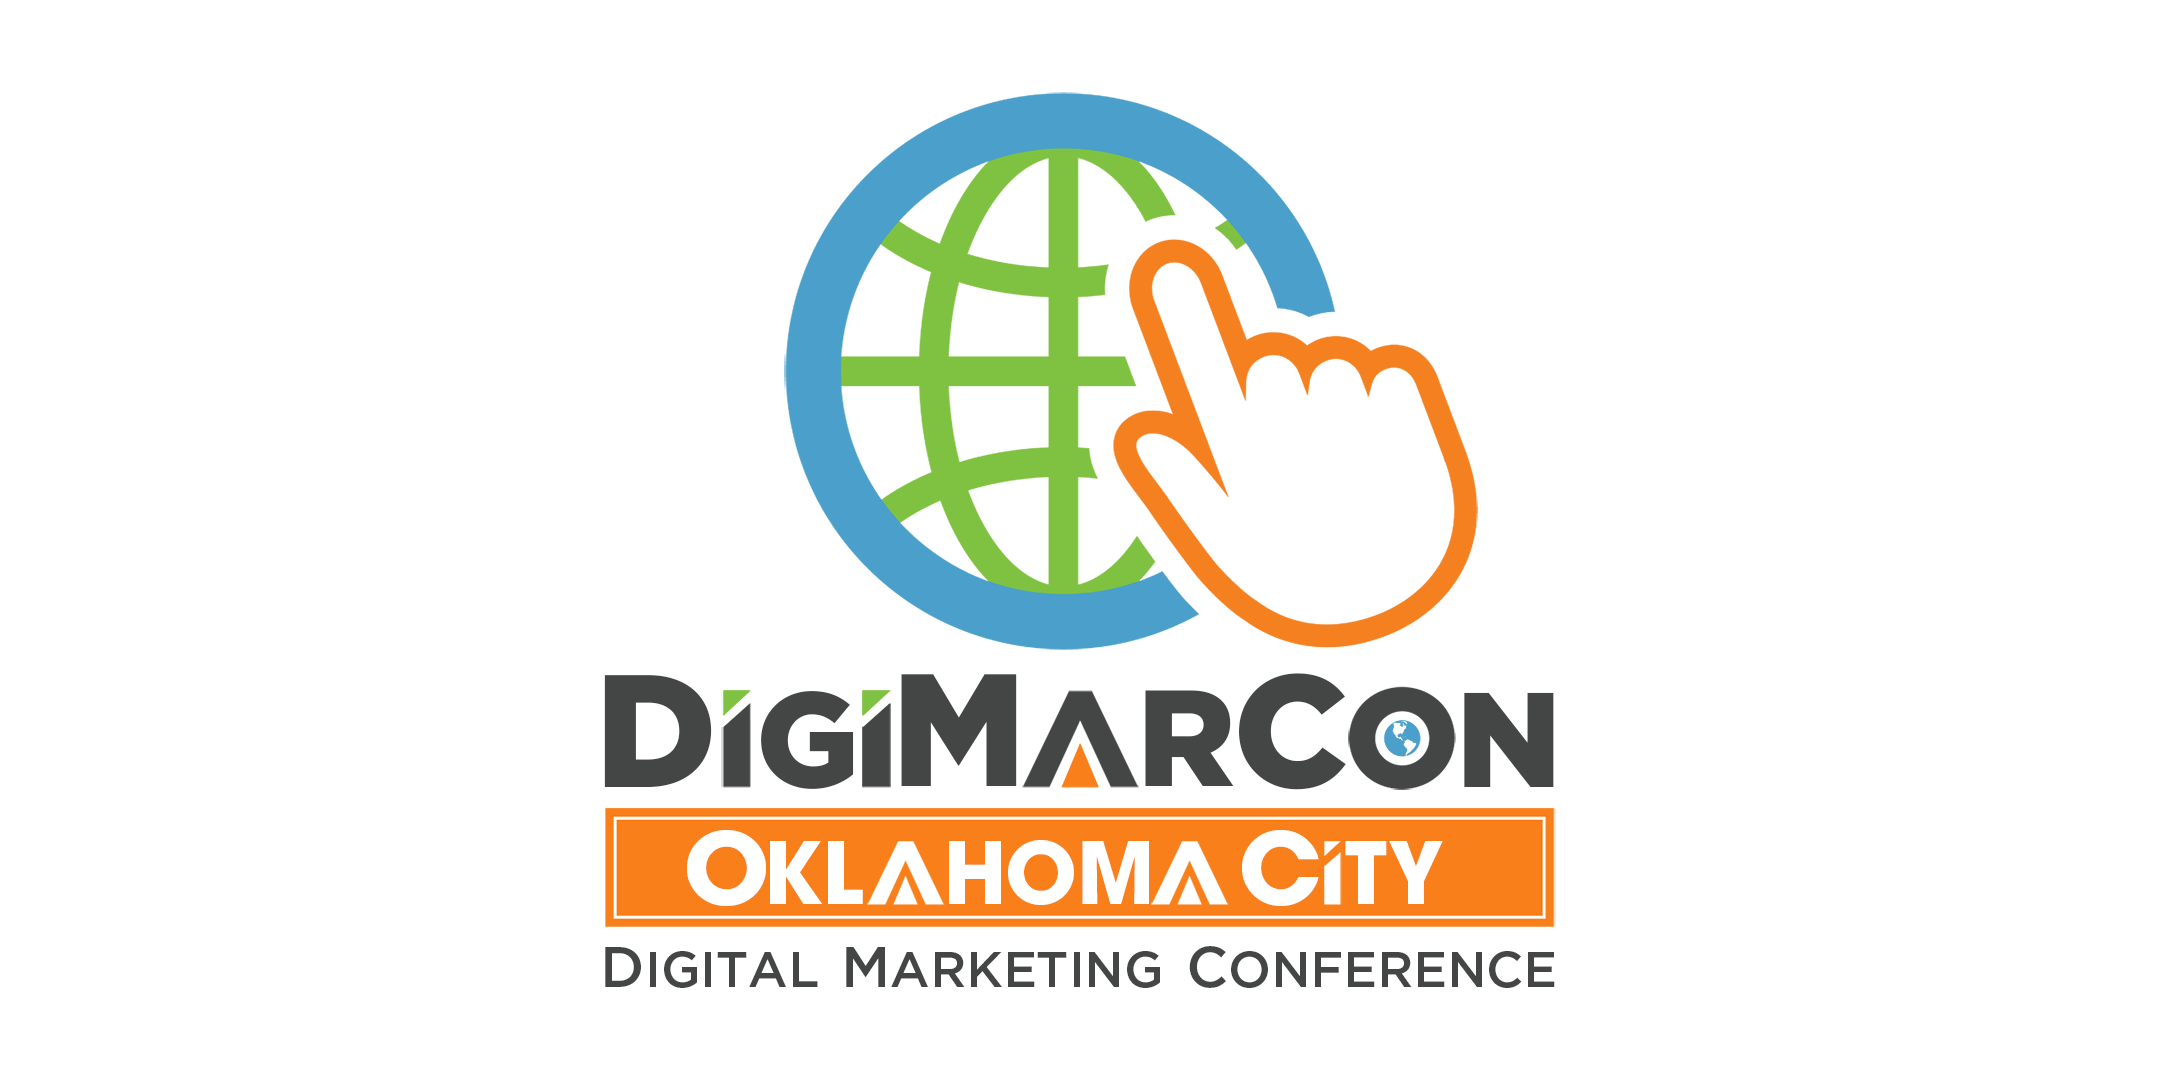 Oklahoma City Digital Marketing, Media & Advertising Conference